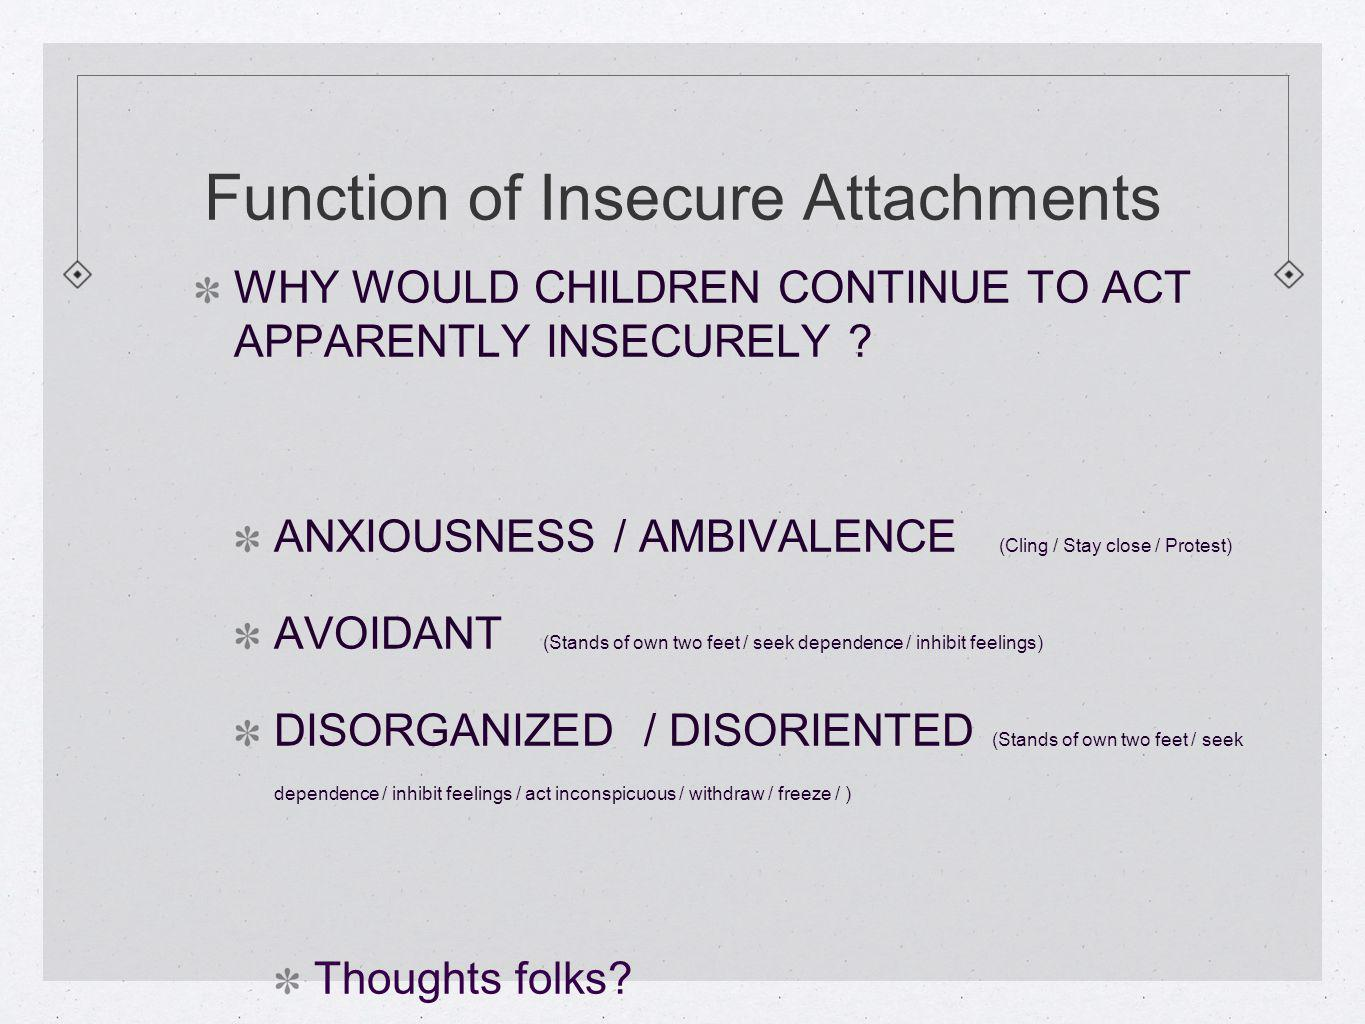 Function of Insecure Attachments